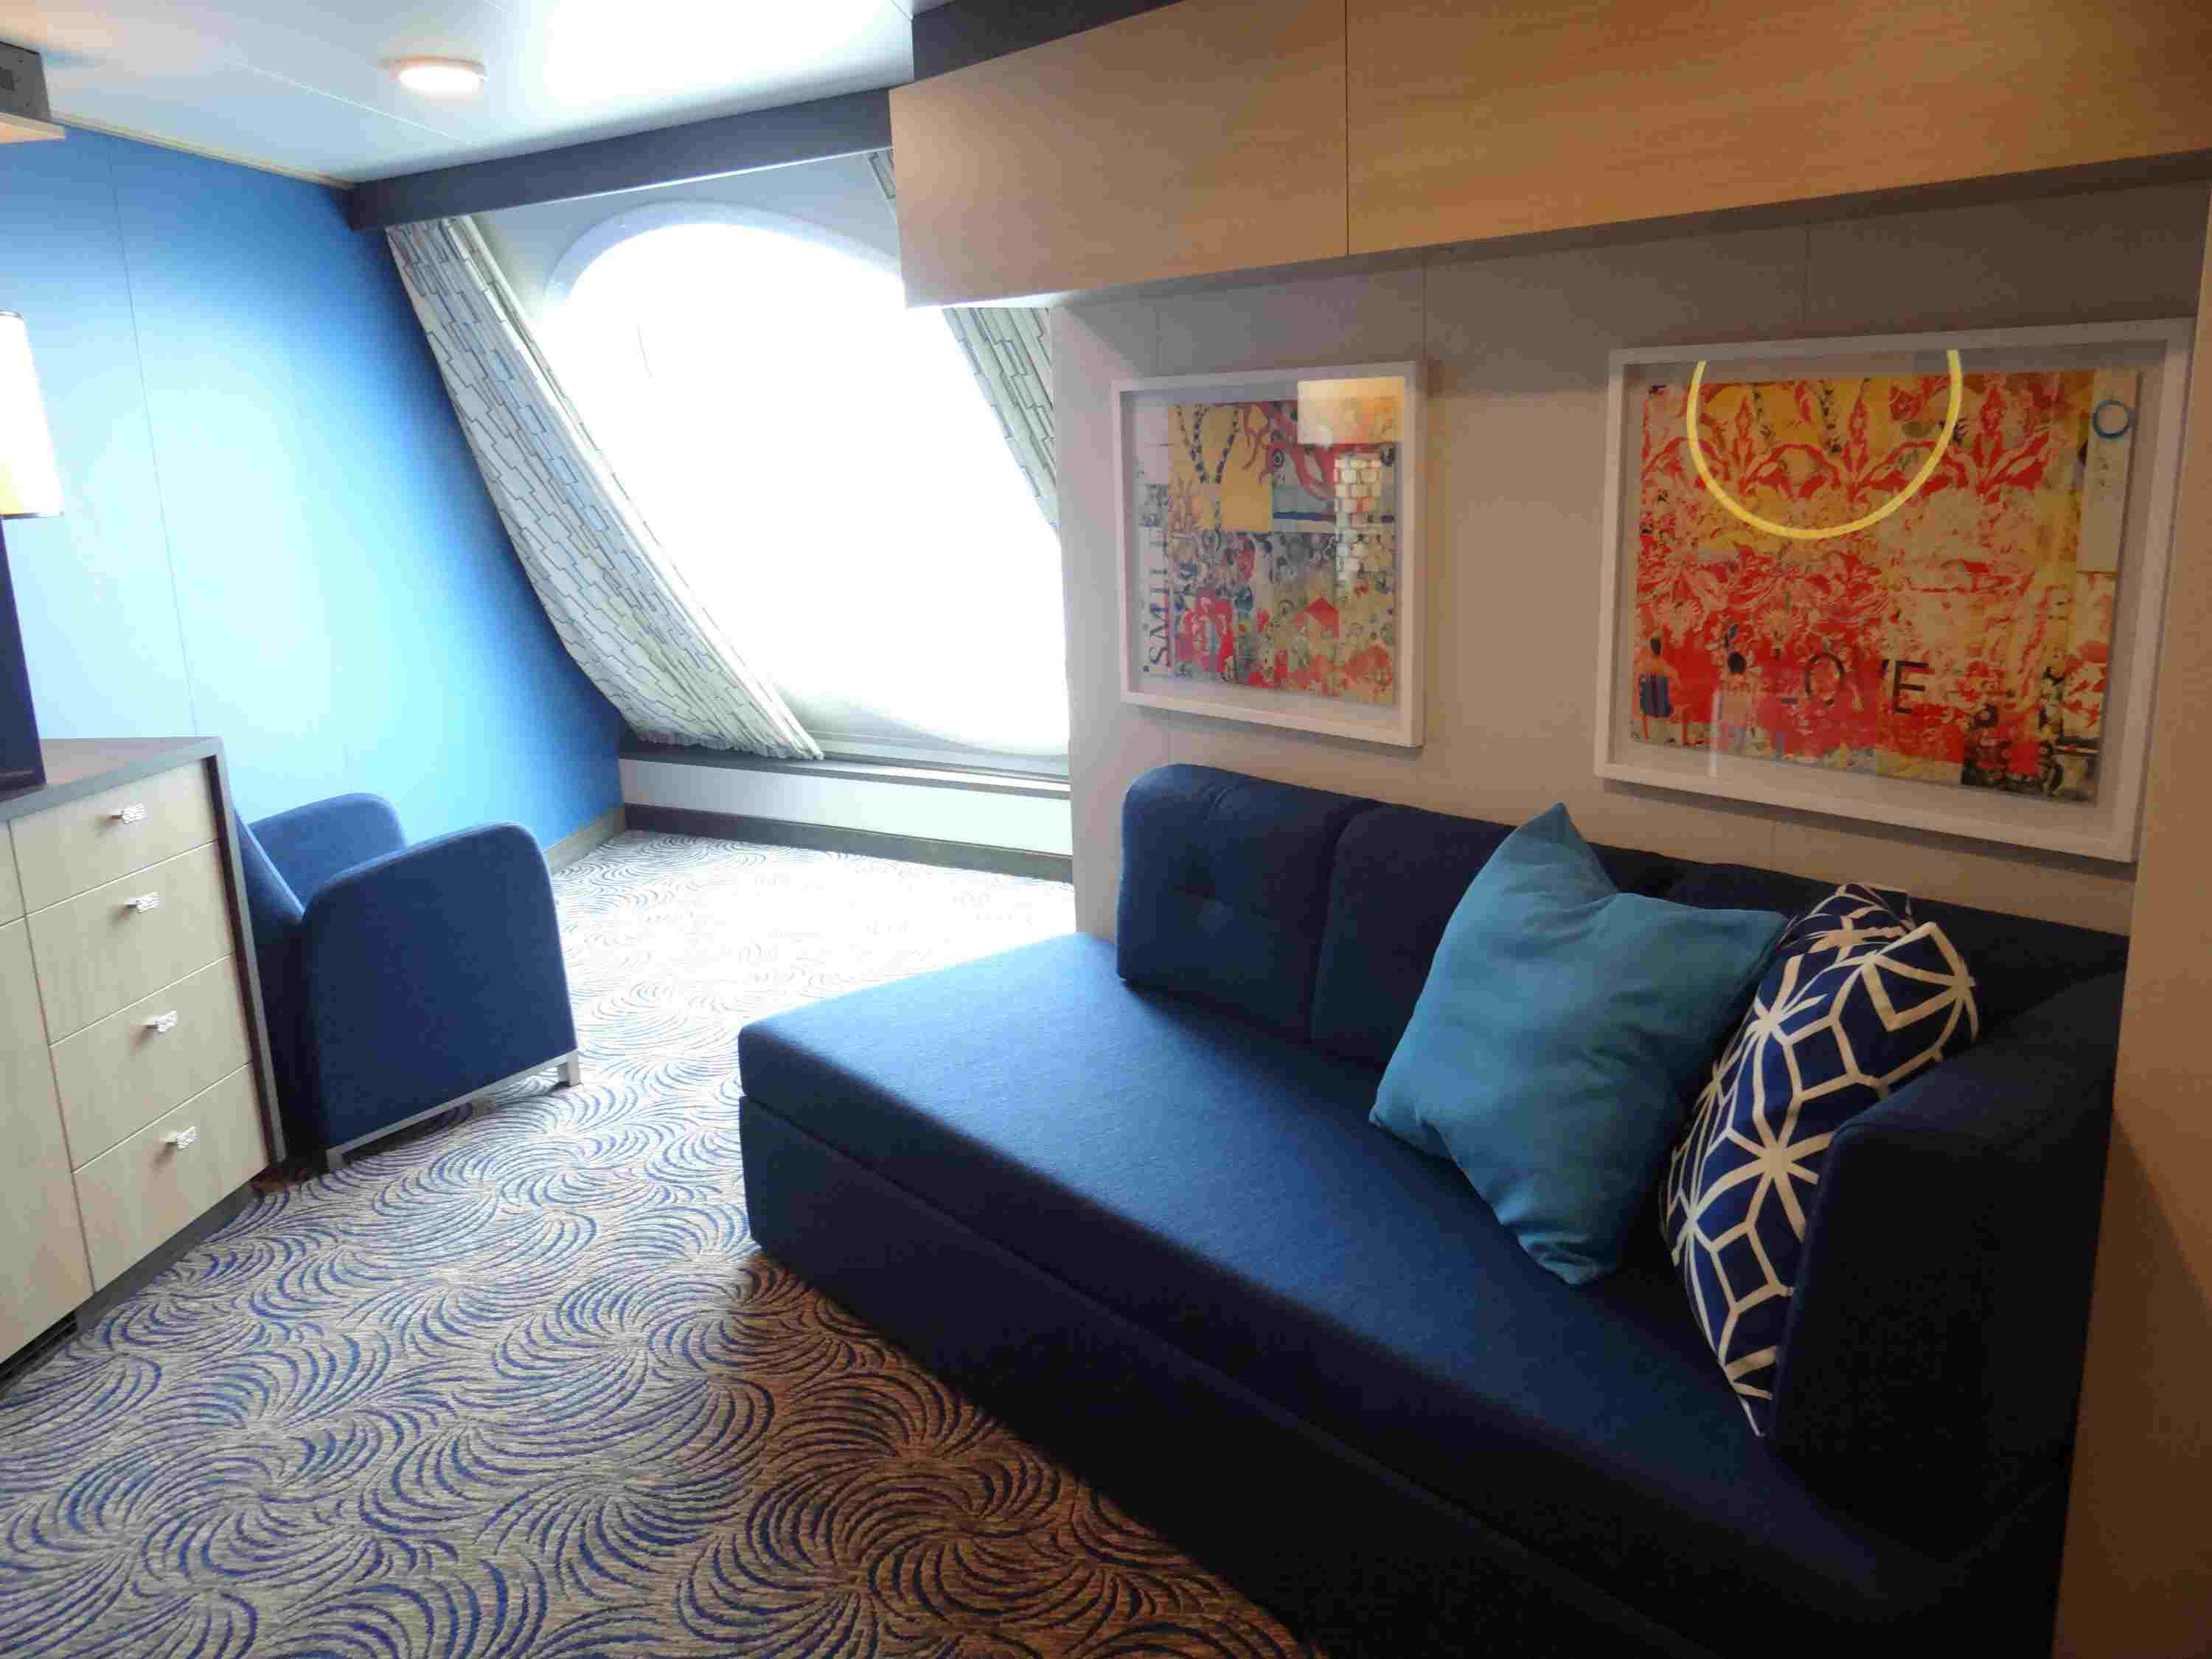 Quantum of the Seas Cruise Ship Cabins and Suites